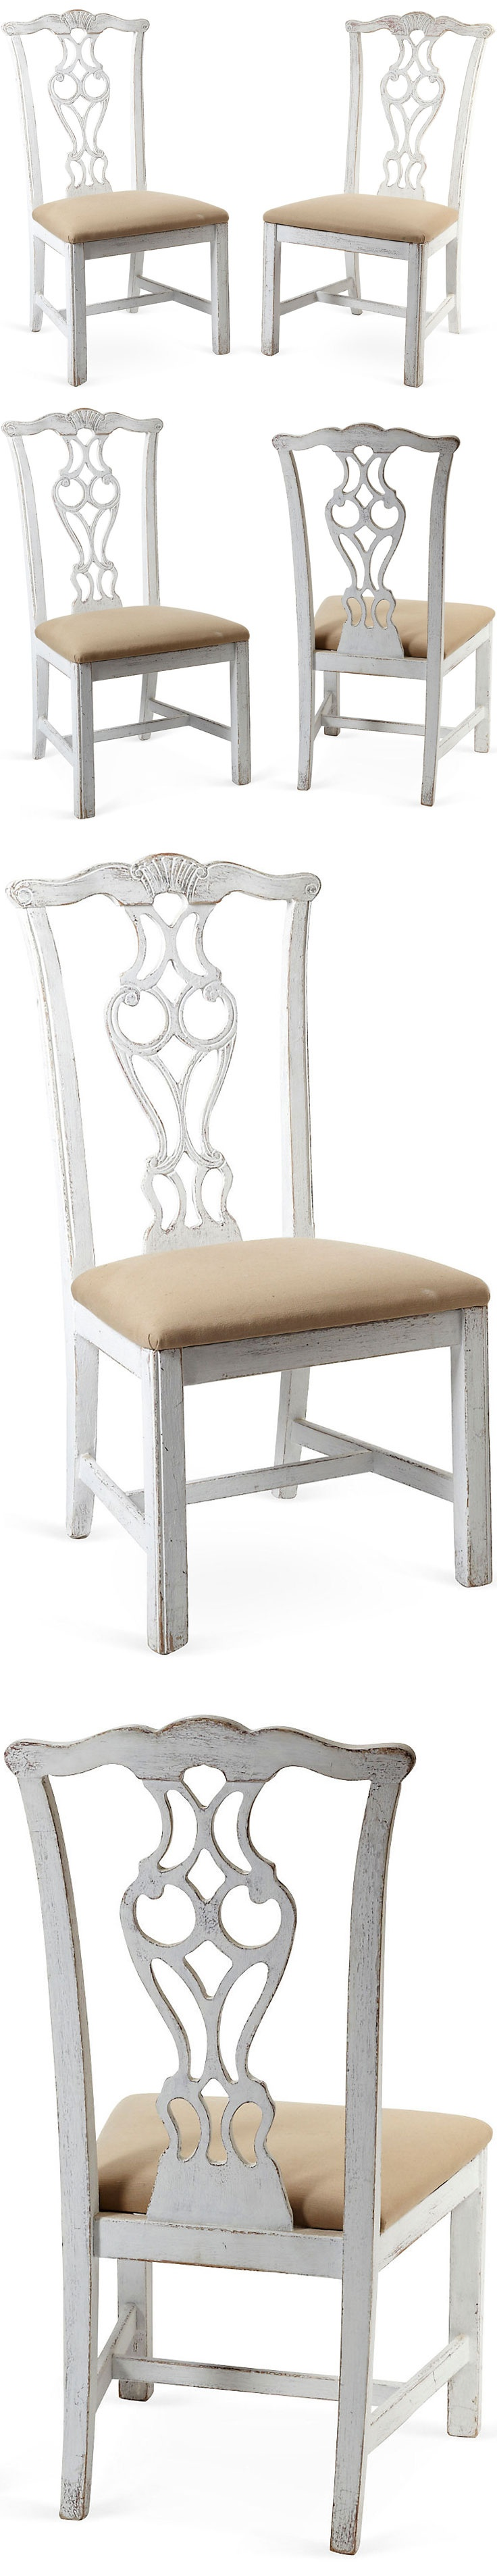 Painted Chippendale Style Chairs Pair $675 Retail $1450